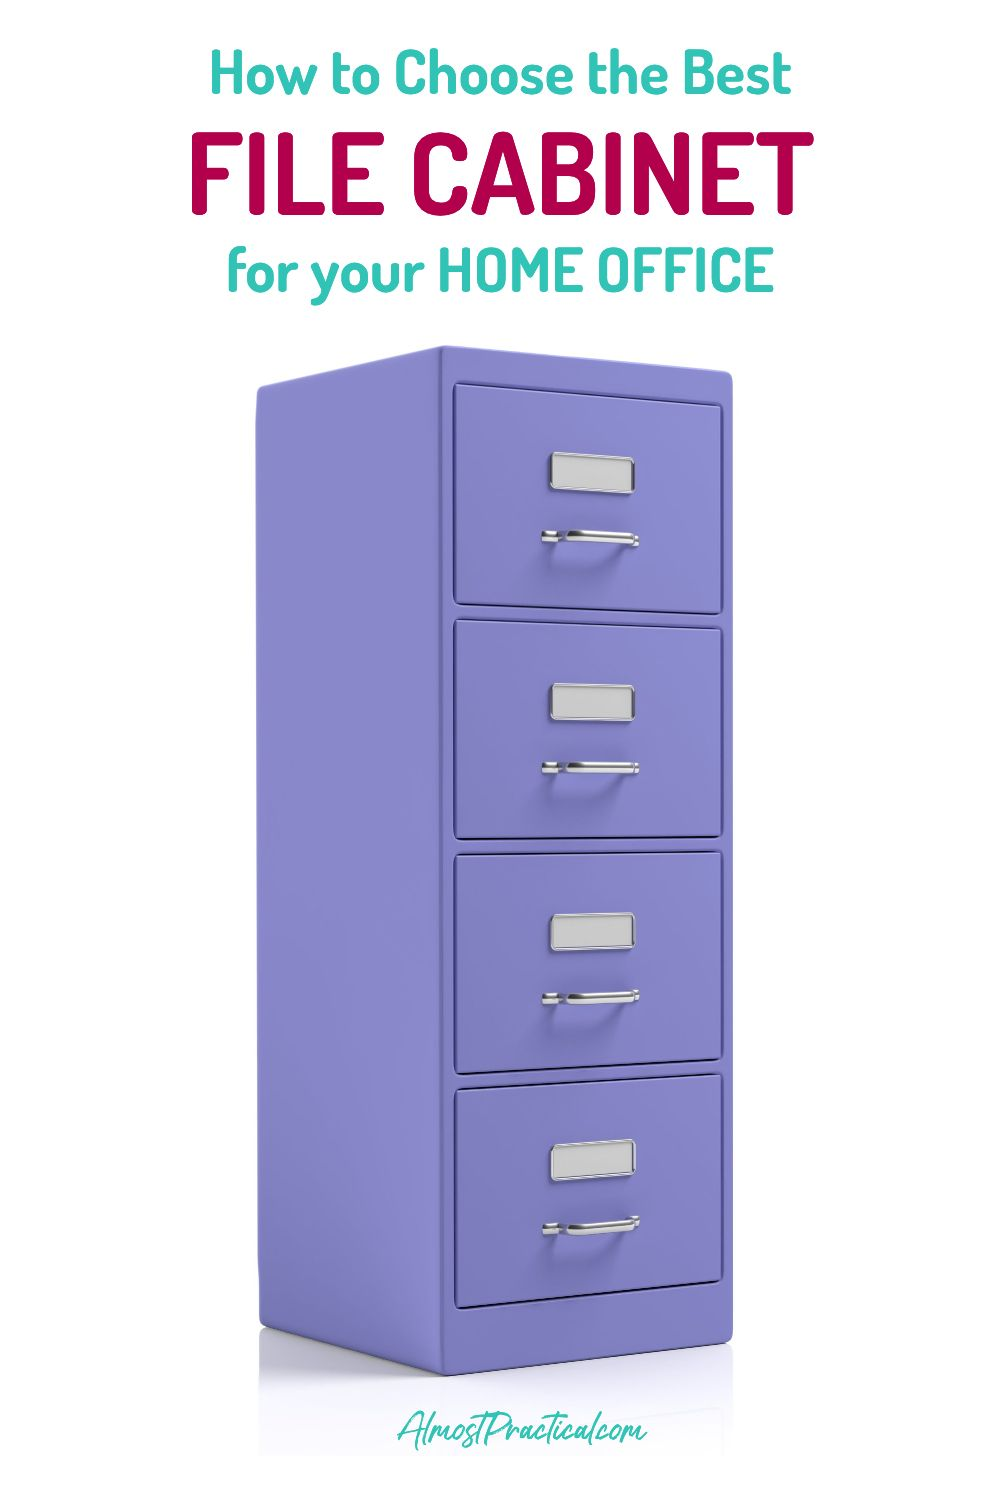 How To Choose The Best File Cabinet For Your Home Office Filing Cabinet Organizing Paperwork Cabinet